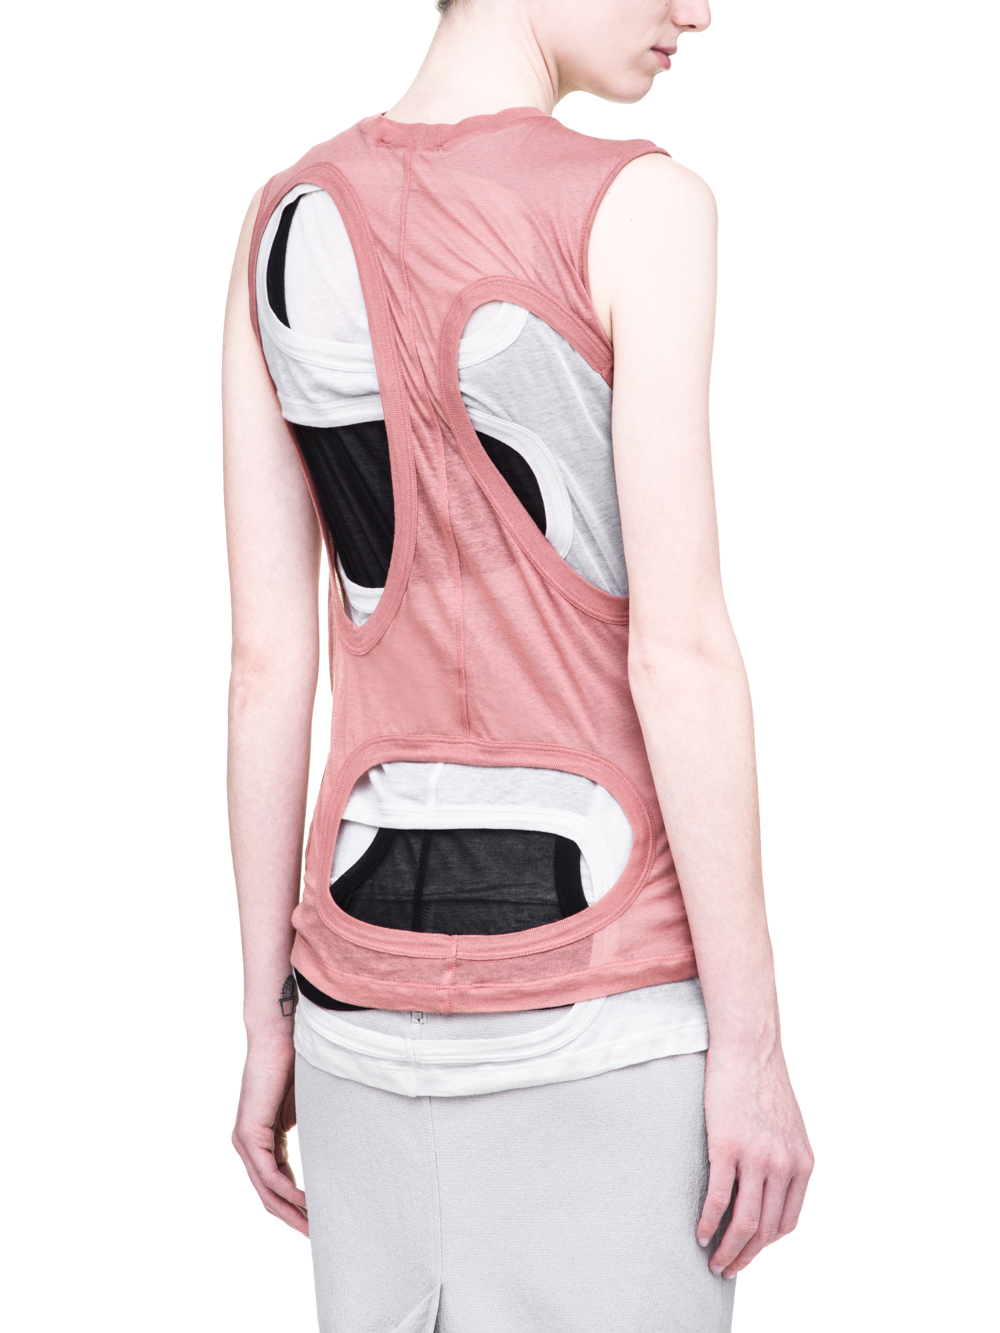 RICK OWENS SS19 BABEL MEGA MEMBRANE TEE IN LIGHT COTTON IS A COMBO OF THREE DIRT MEMBRANE TEES IN BLACK, GREY AND PINK